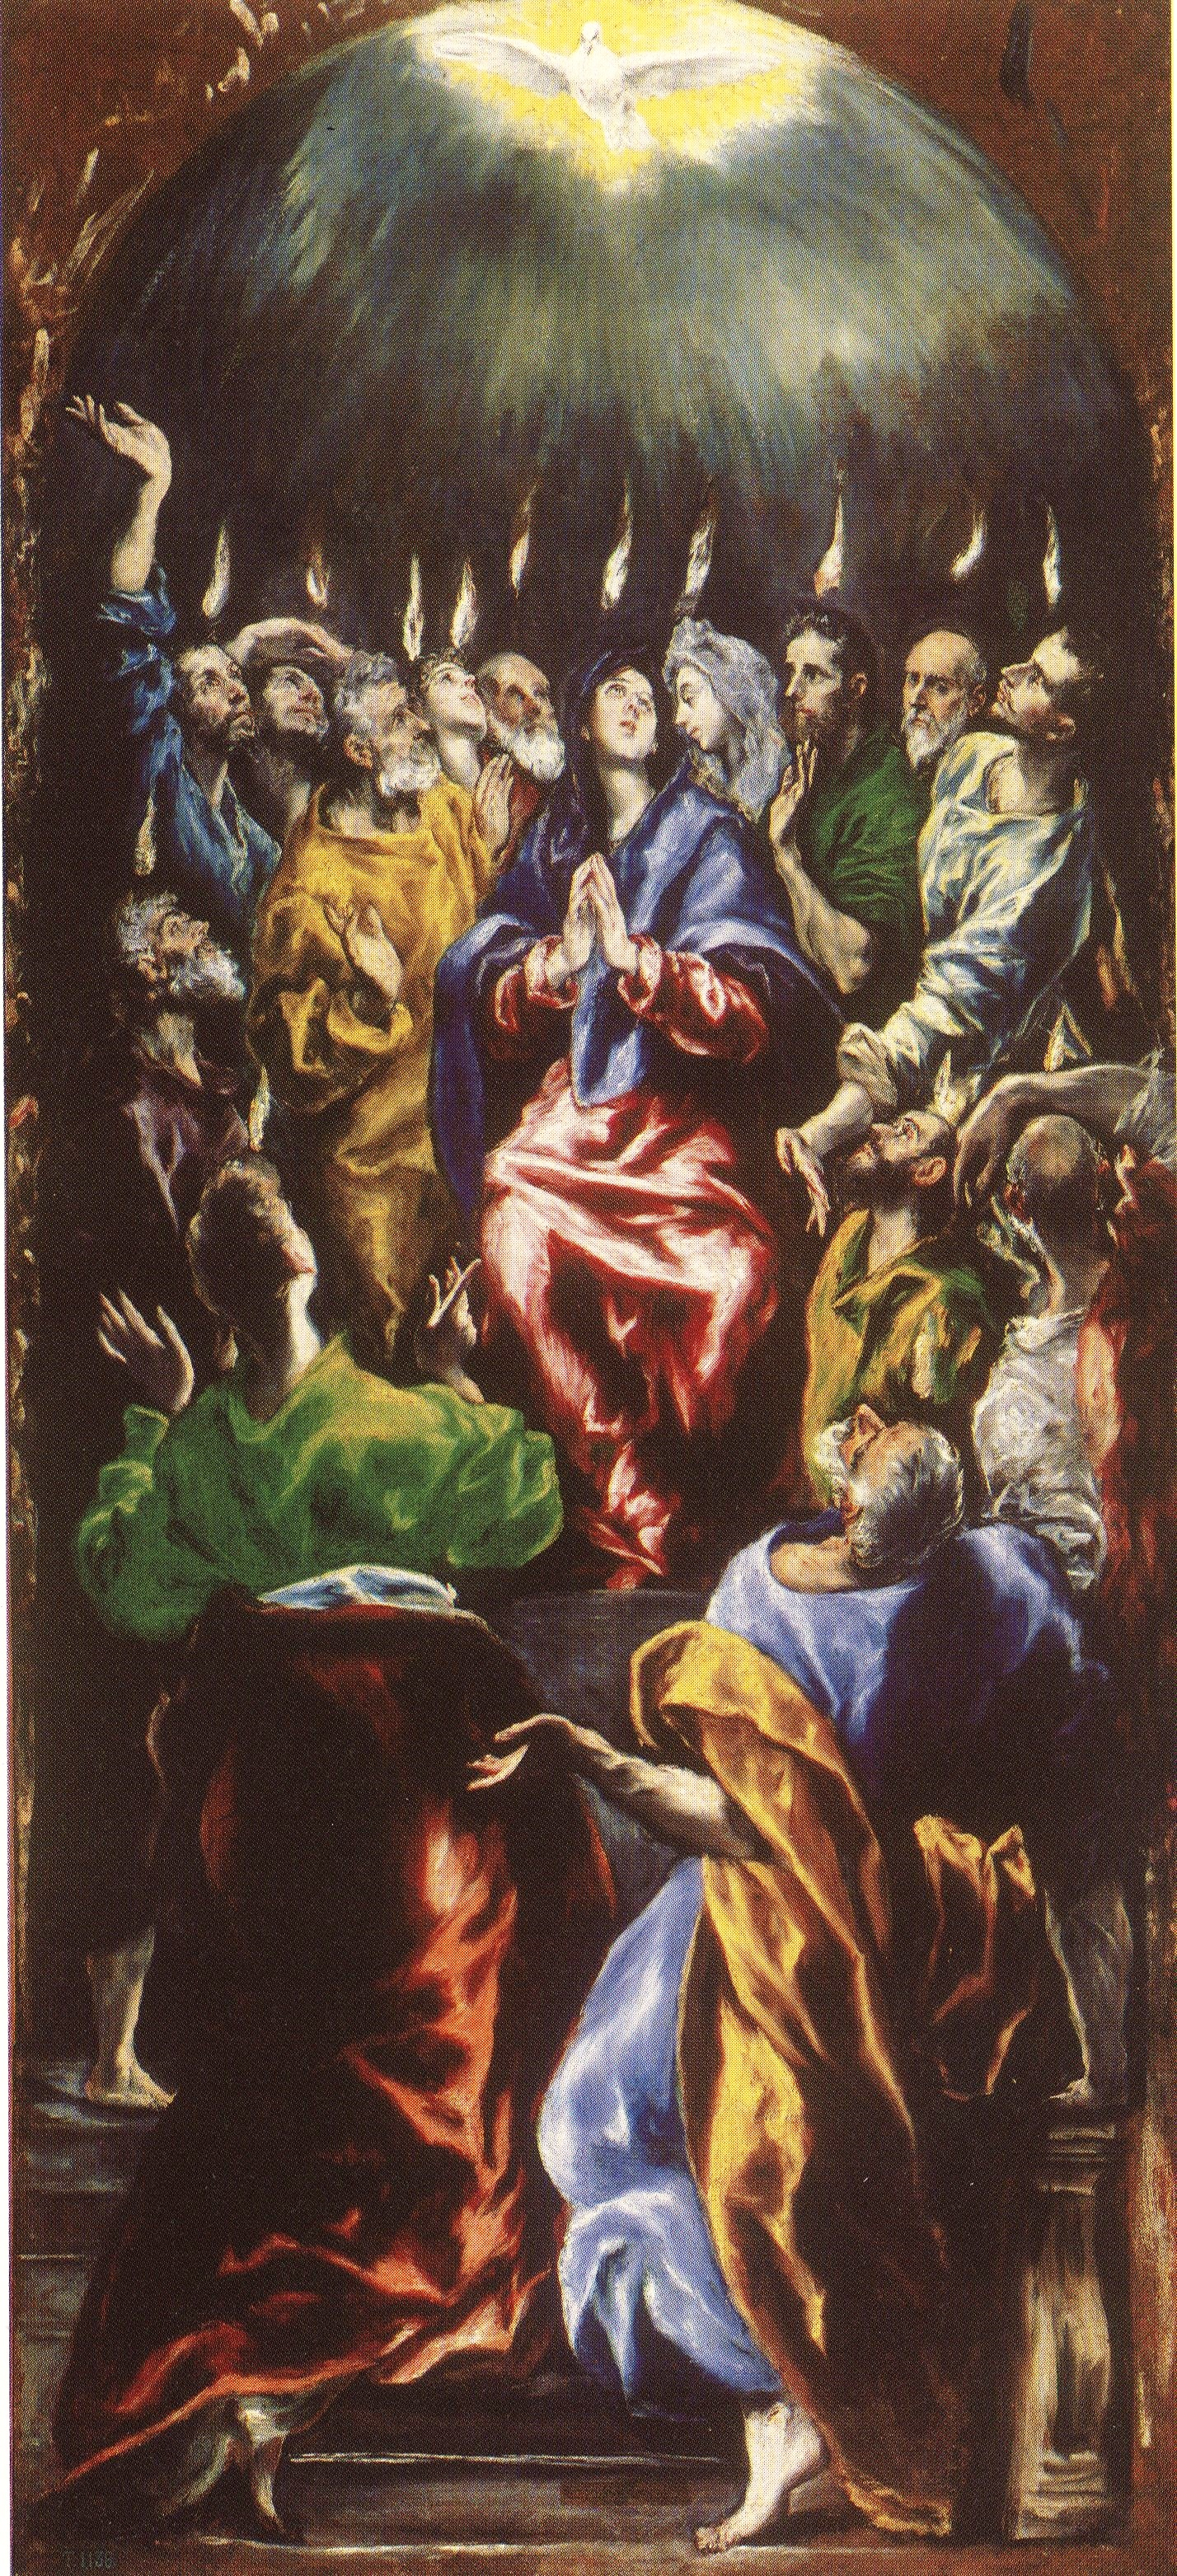 http://upload.wikimedia.org/wikipedia/commons/1/19/El_Greco_006.jpg